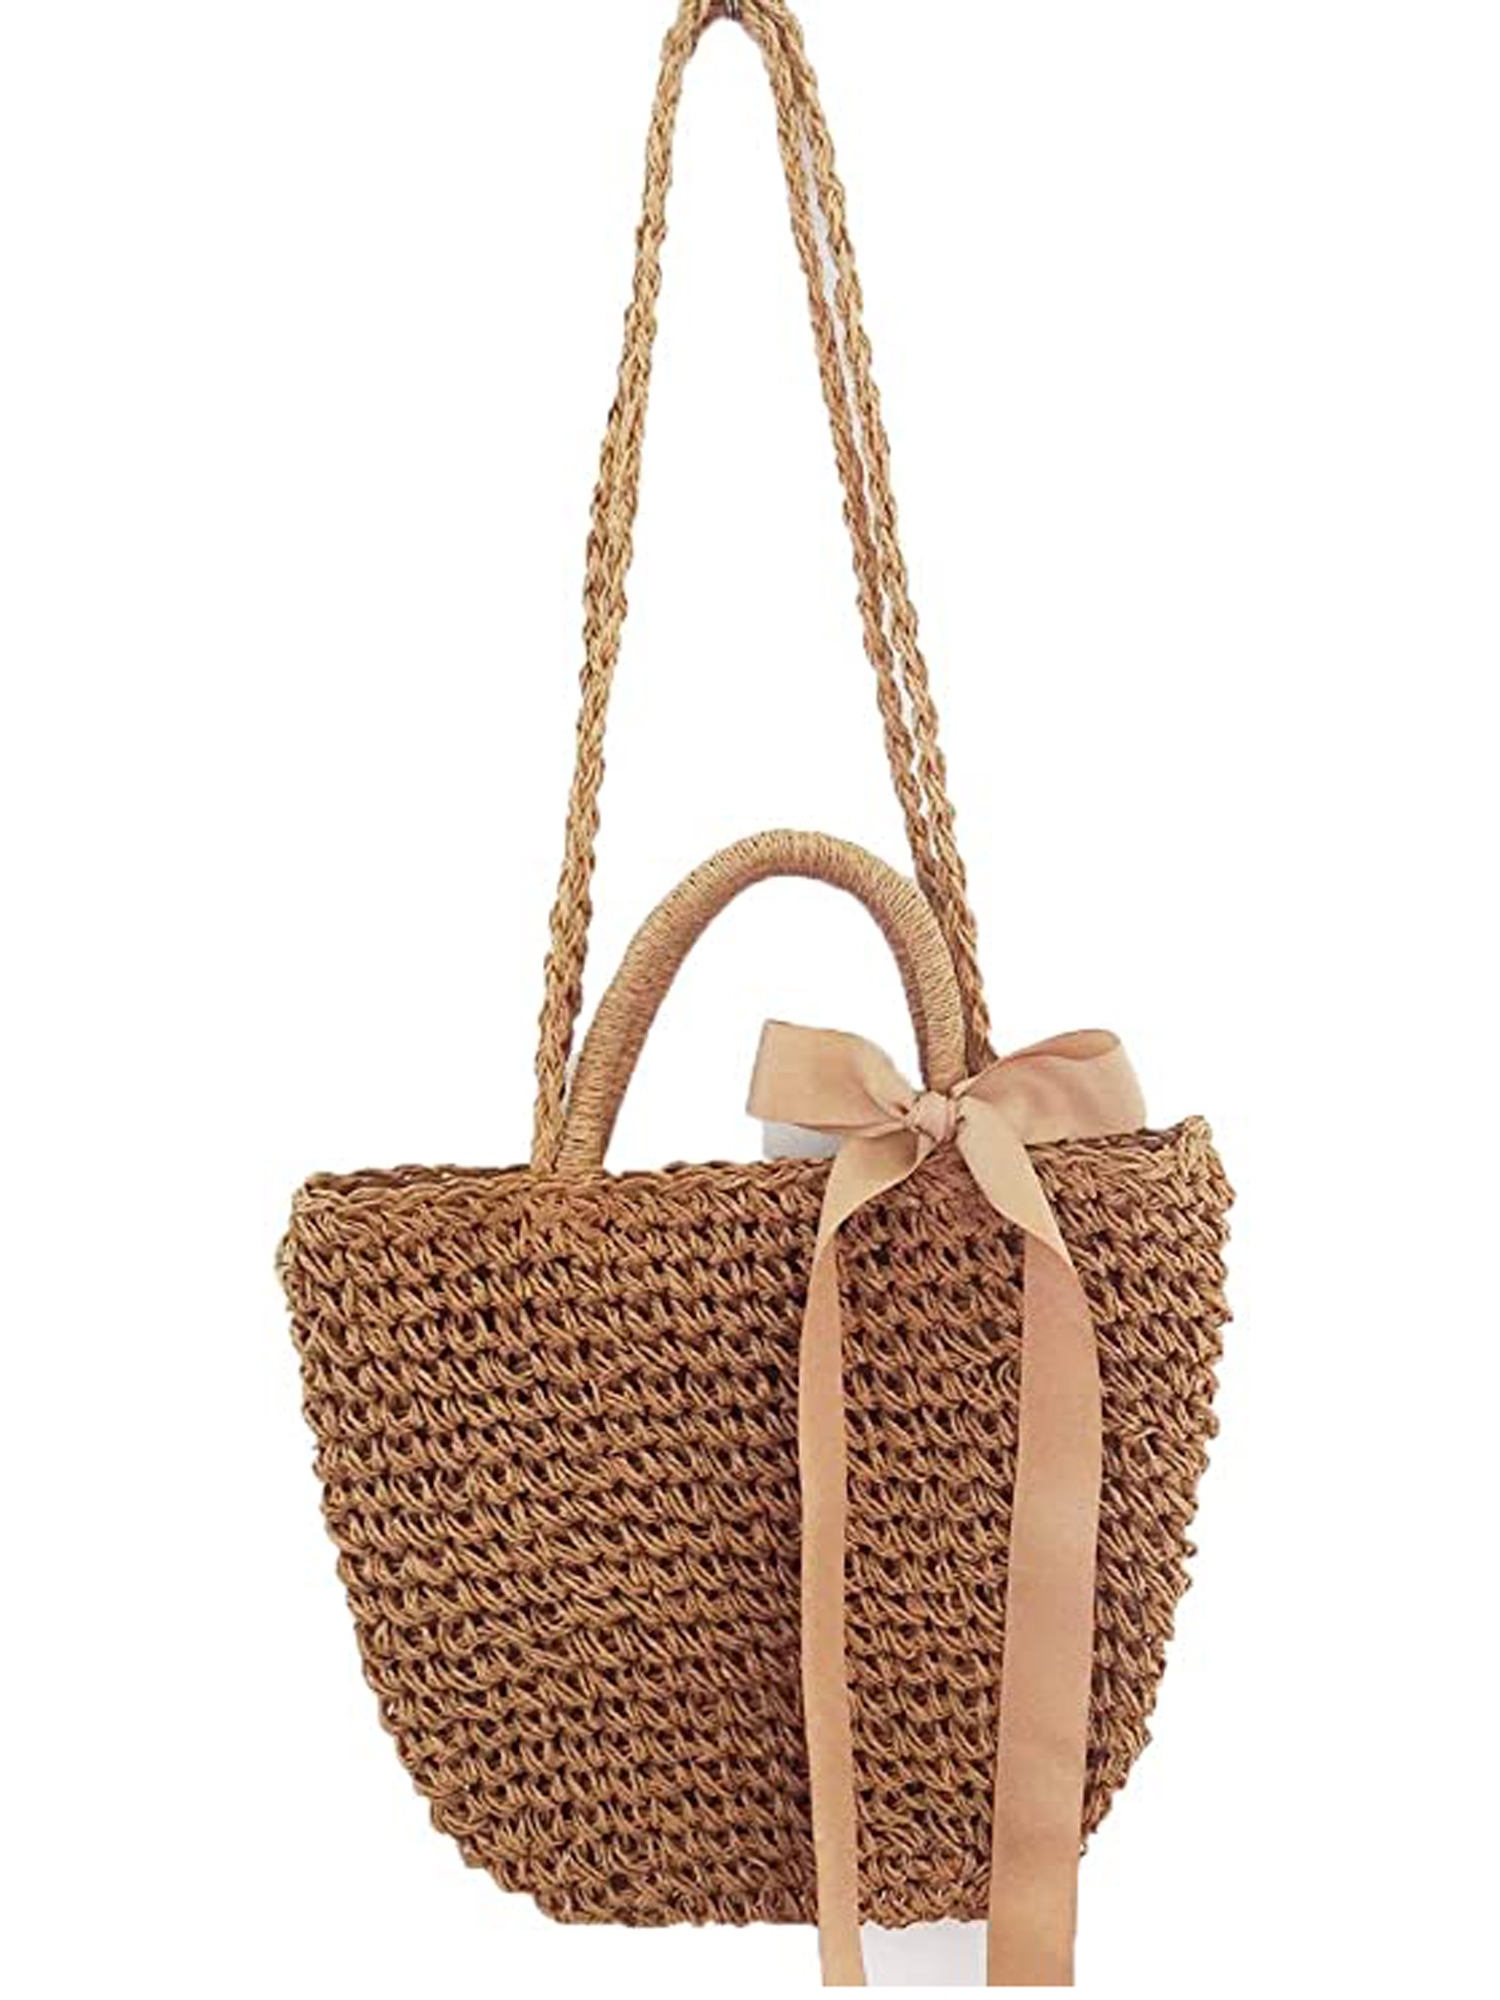 Details about  /Straw Over Shoulder Multi-Color Beach Tote